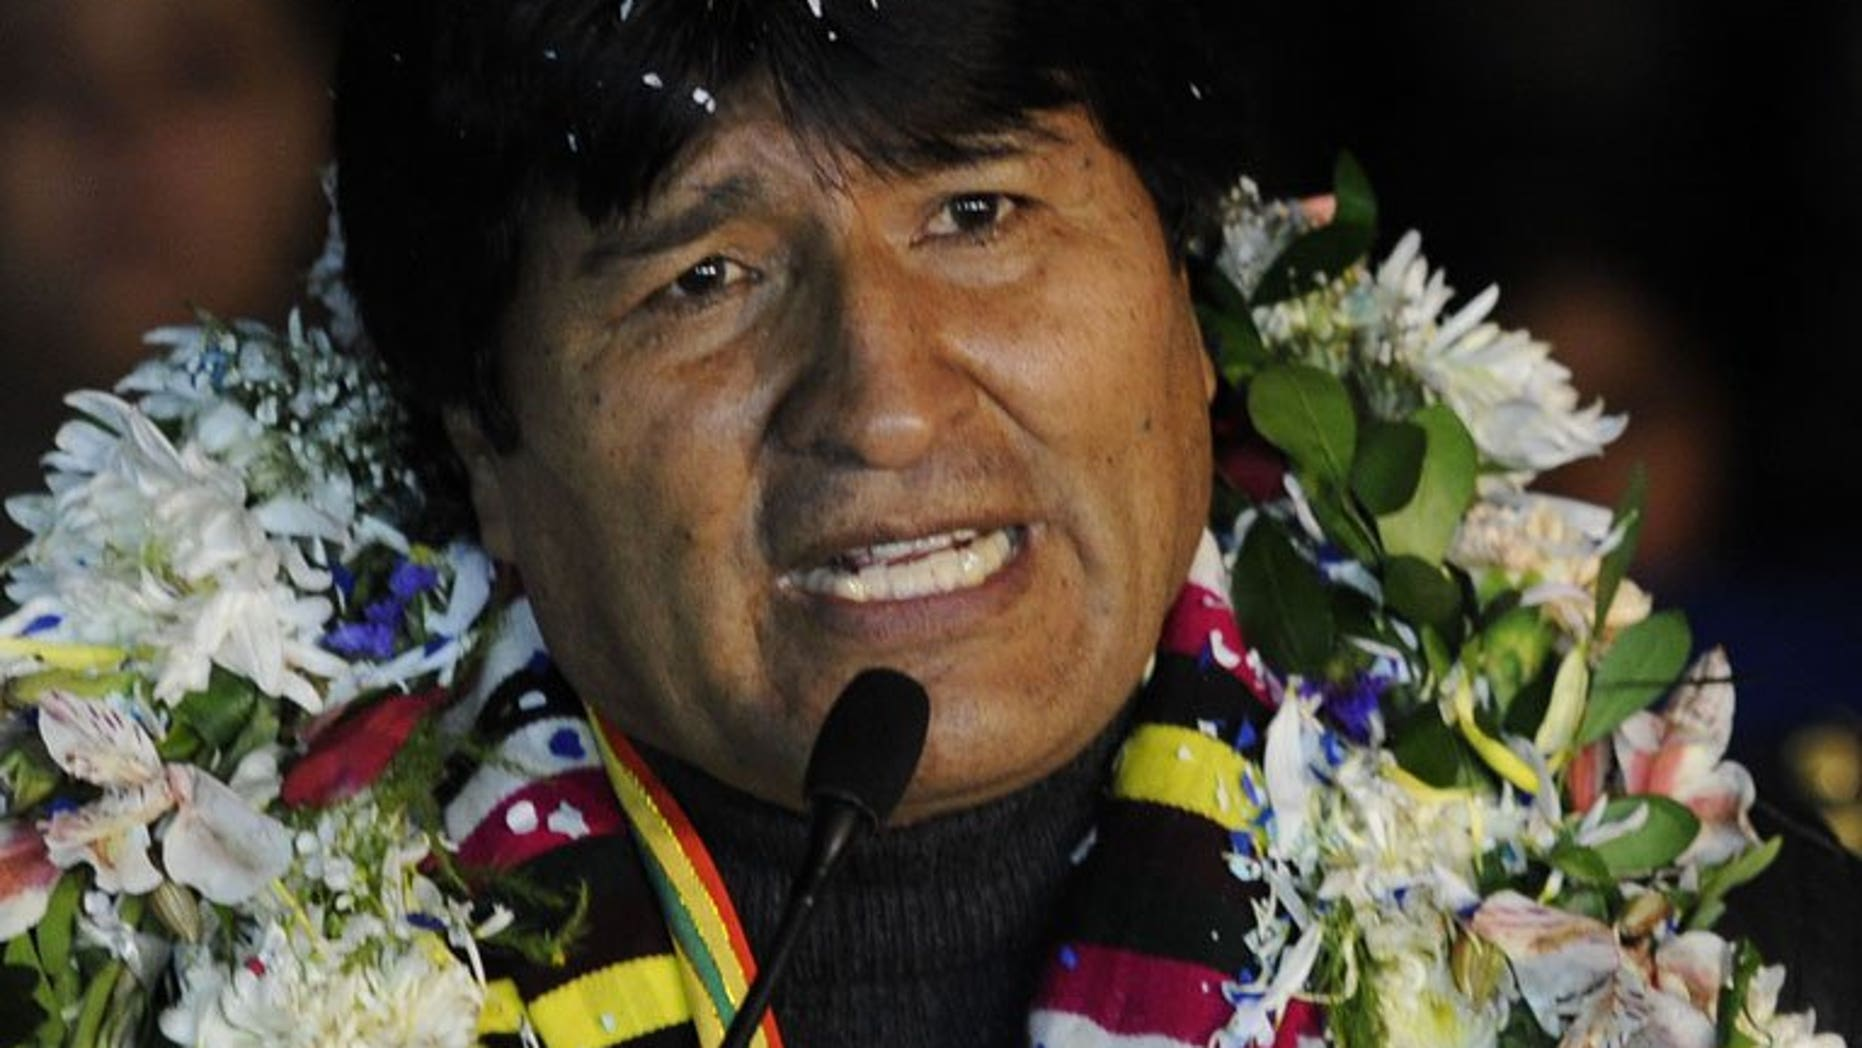 Evo Morales speaks to journalists at El Alto Airport late July 3, 2013 in La Paz. The Bolivian President says he would grant asylum to Edward Snowden, if the fugitive US leaker, who is holed up in an airport in Moscow, requests it.